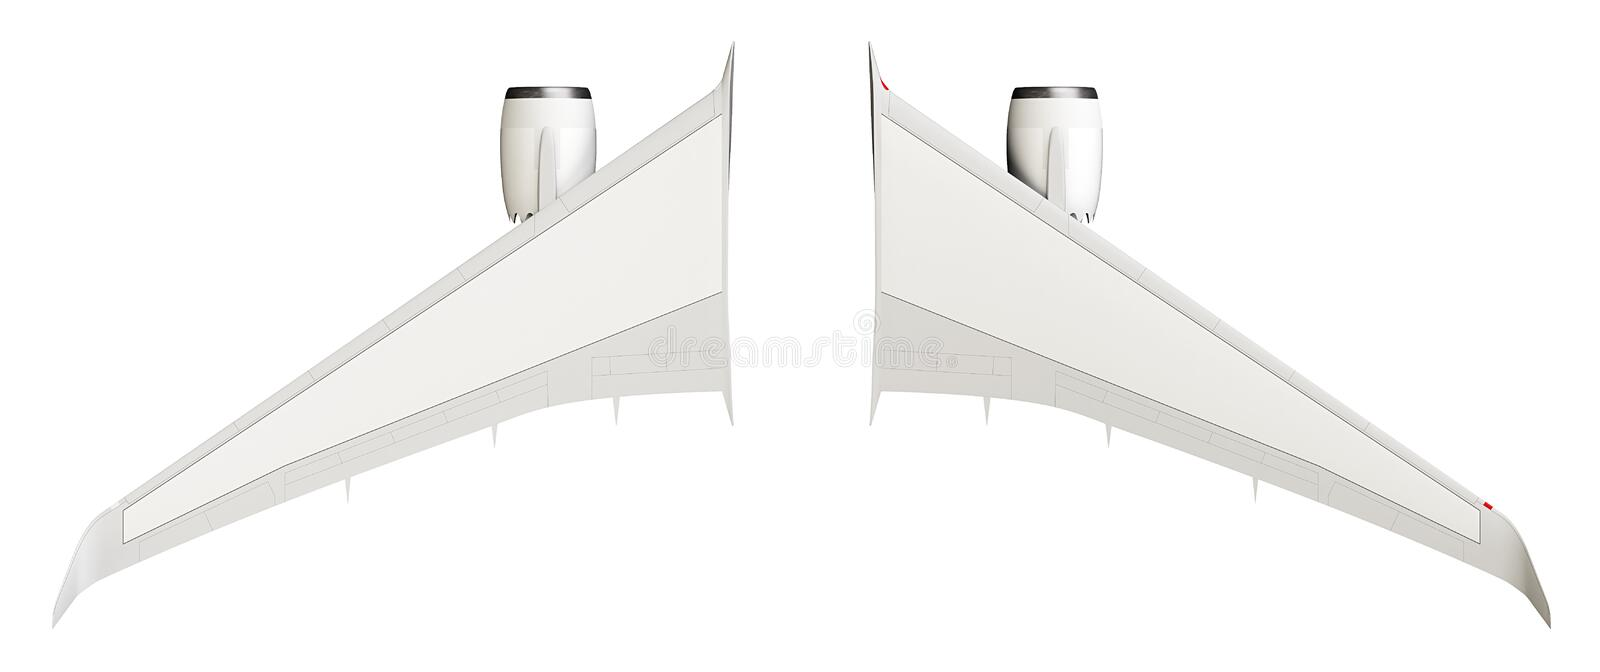 Airplane wings. Isolated on white background, top view royalty free stock photography